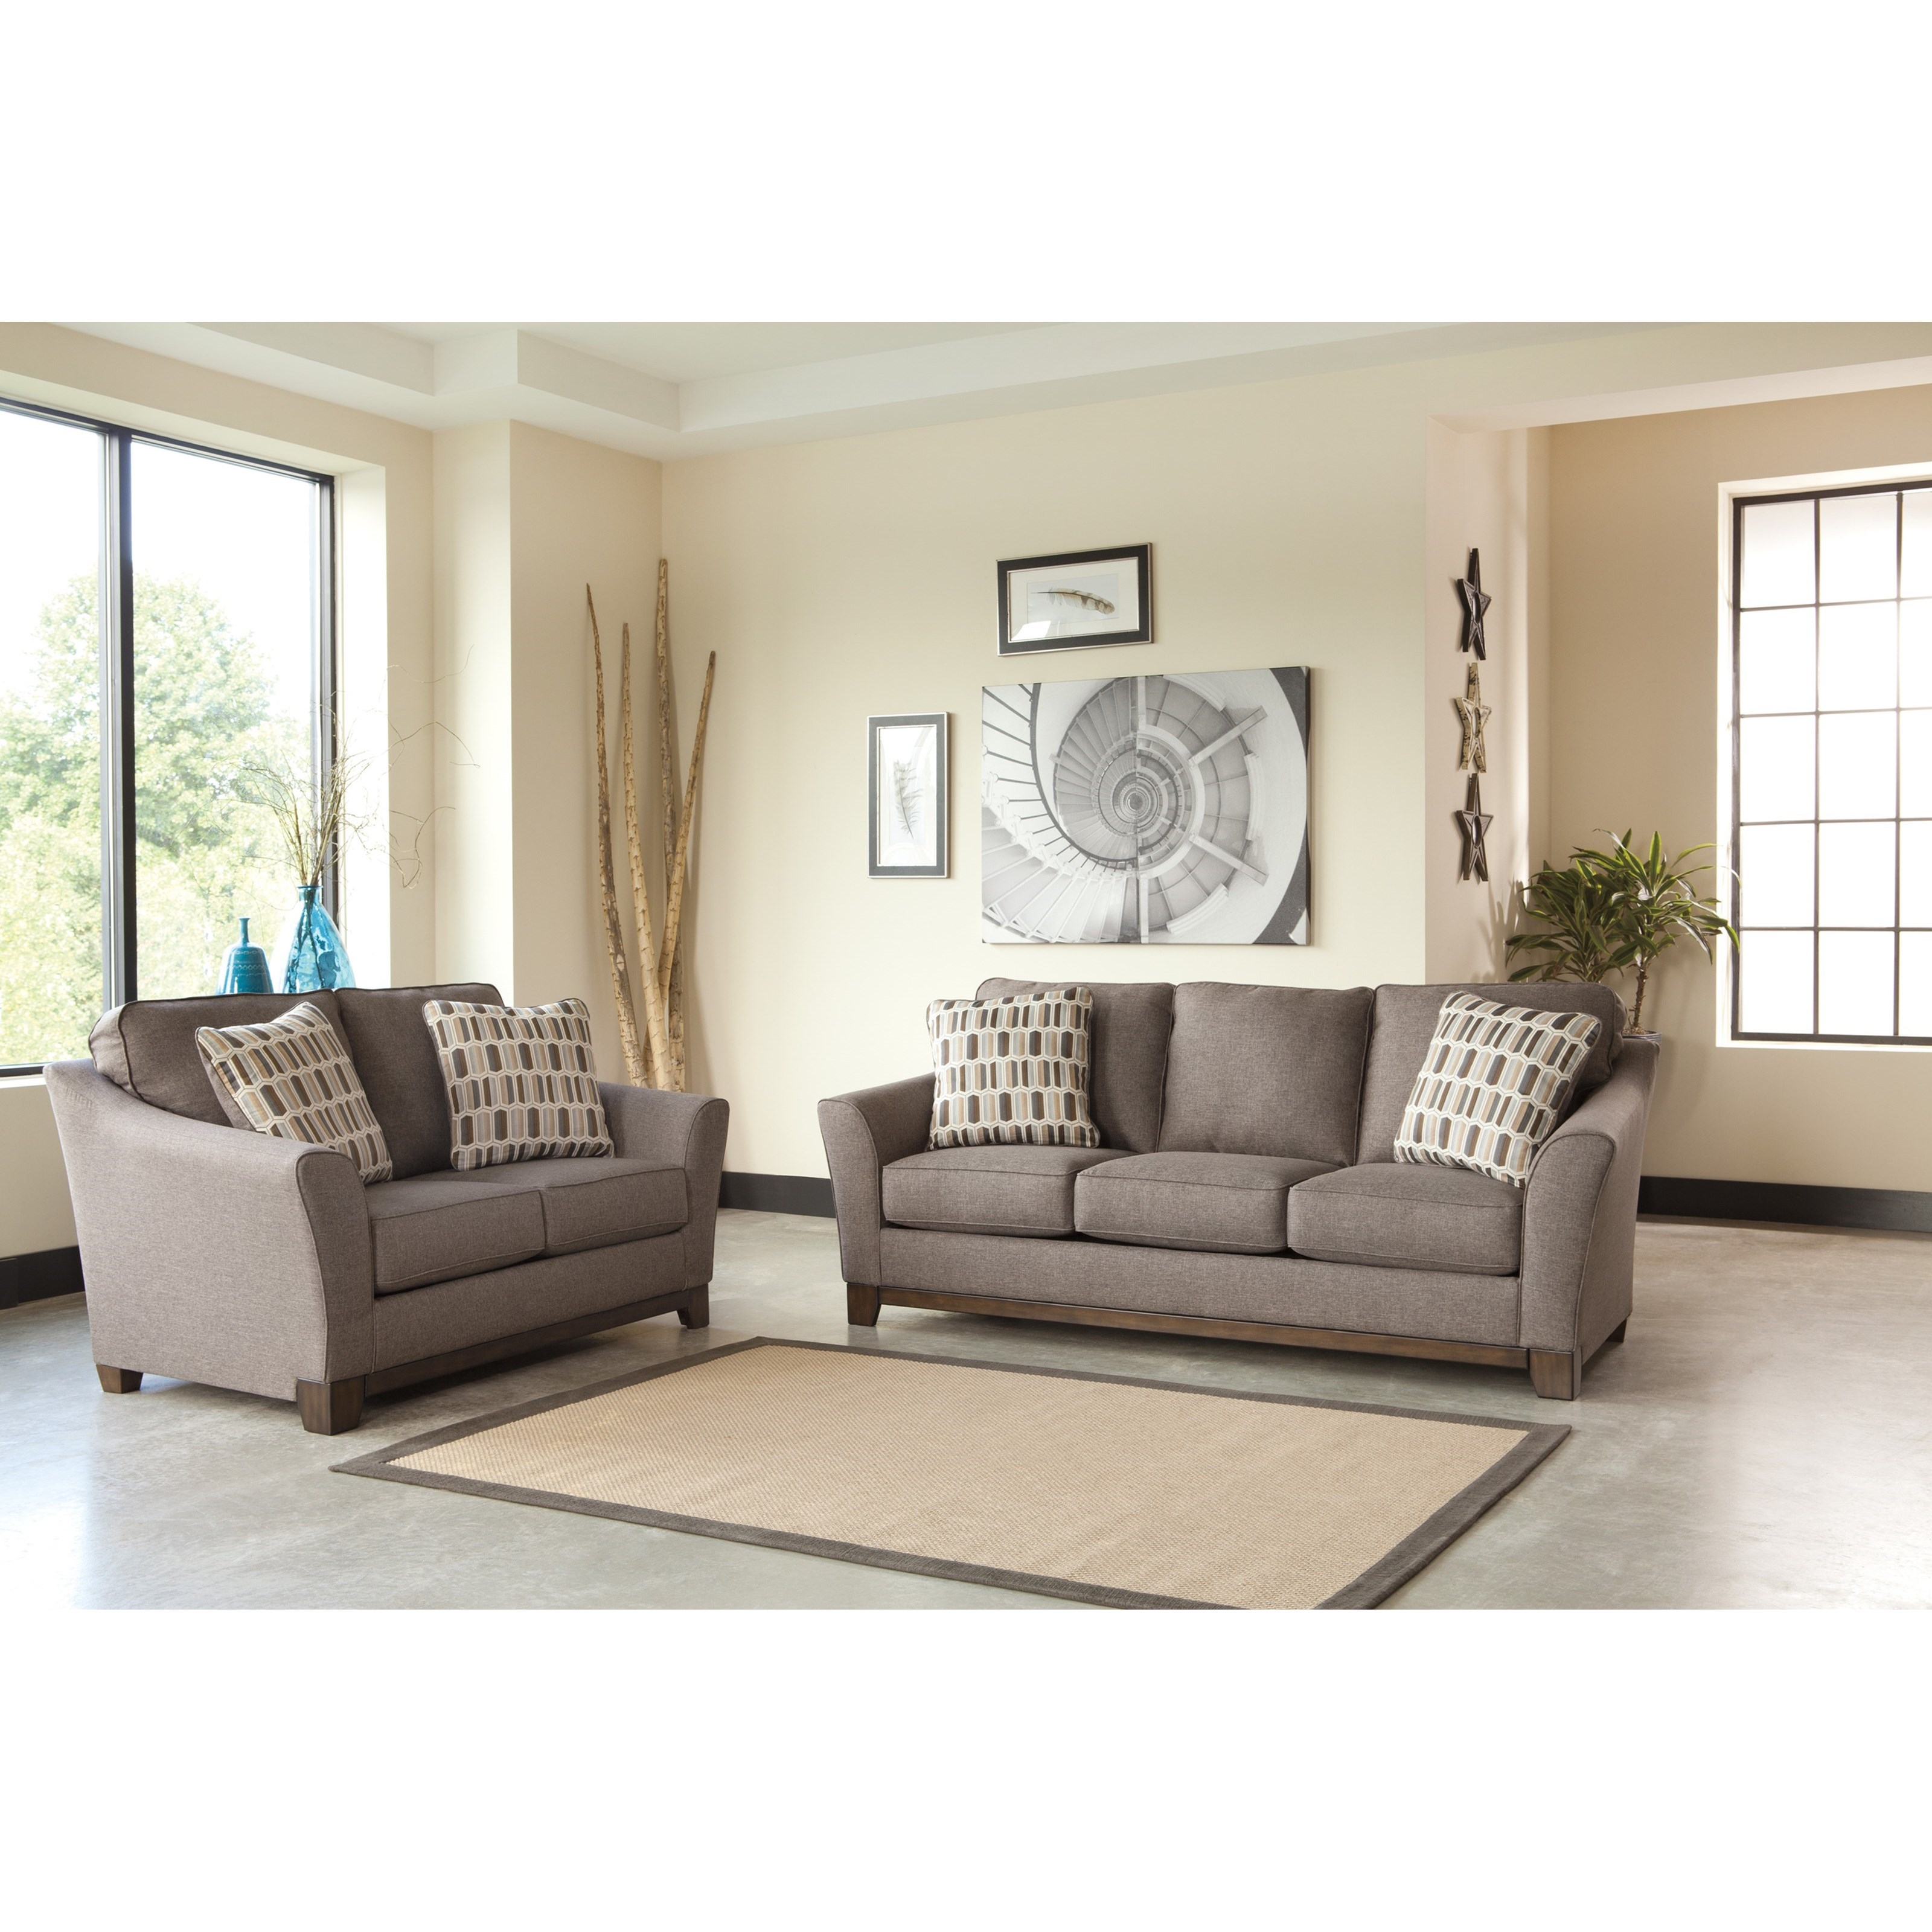 Signature Design by Ashley Alara Stationary Living Room Group - Item Number: 98101 Living Room Group 1